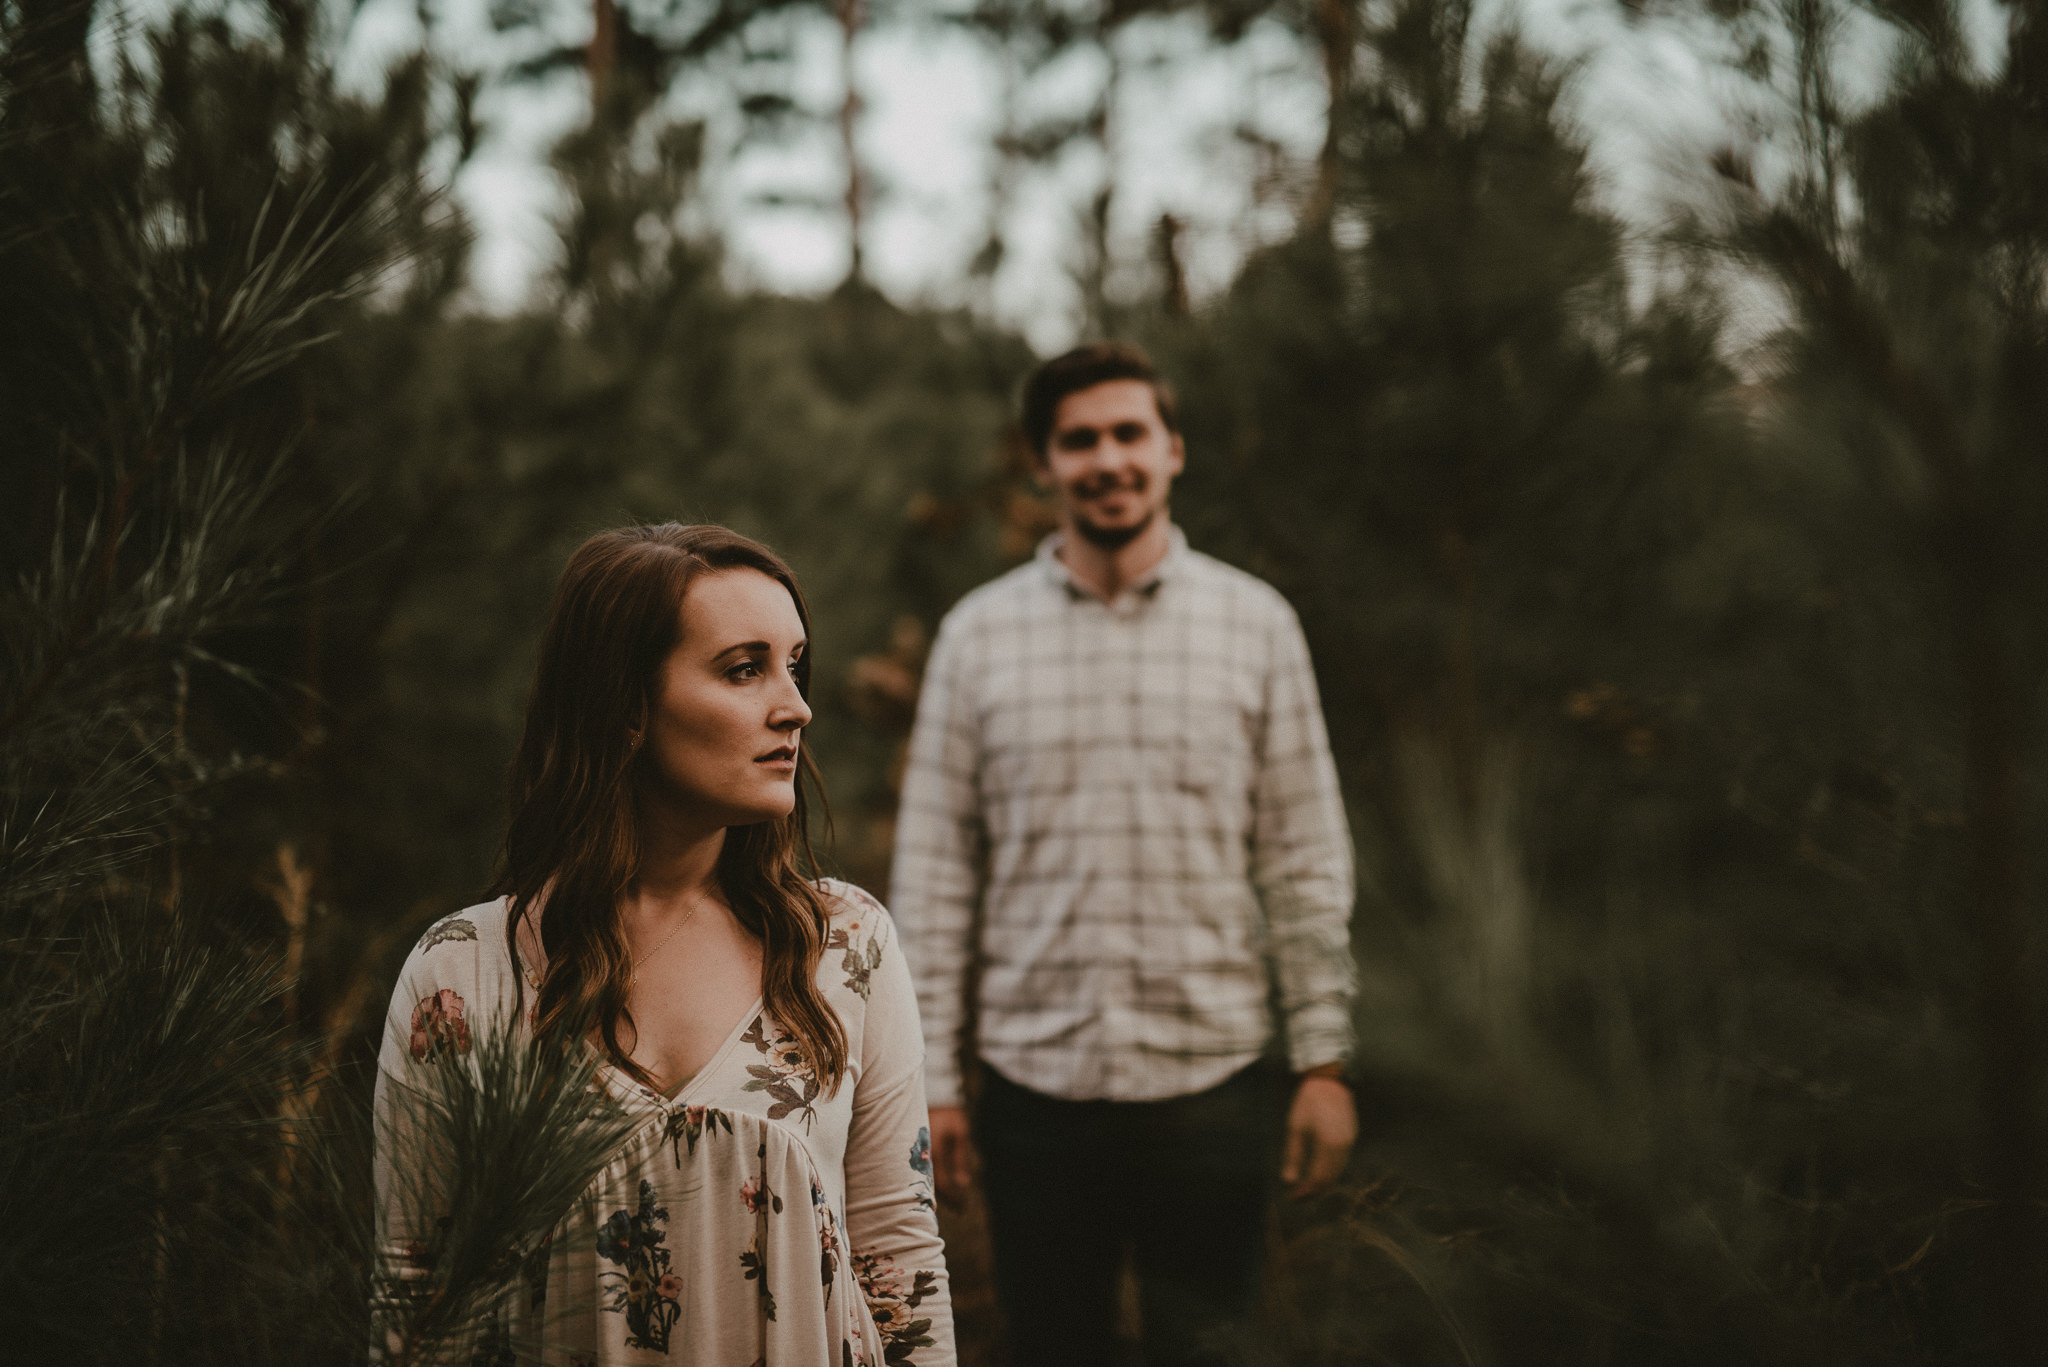 Engagement photos by Donny Tidmore Photography